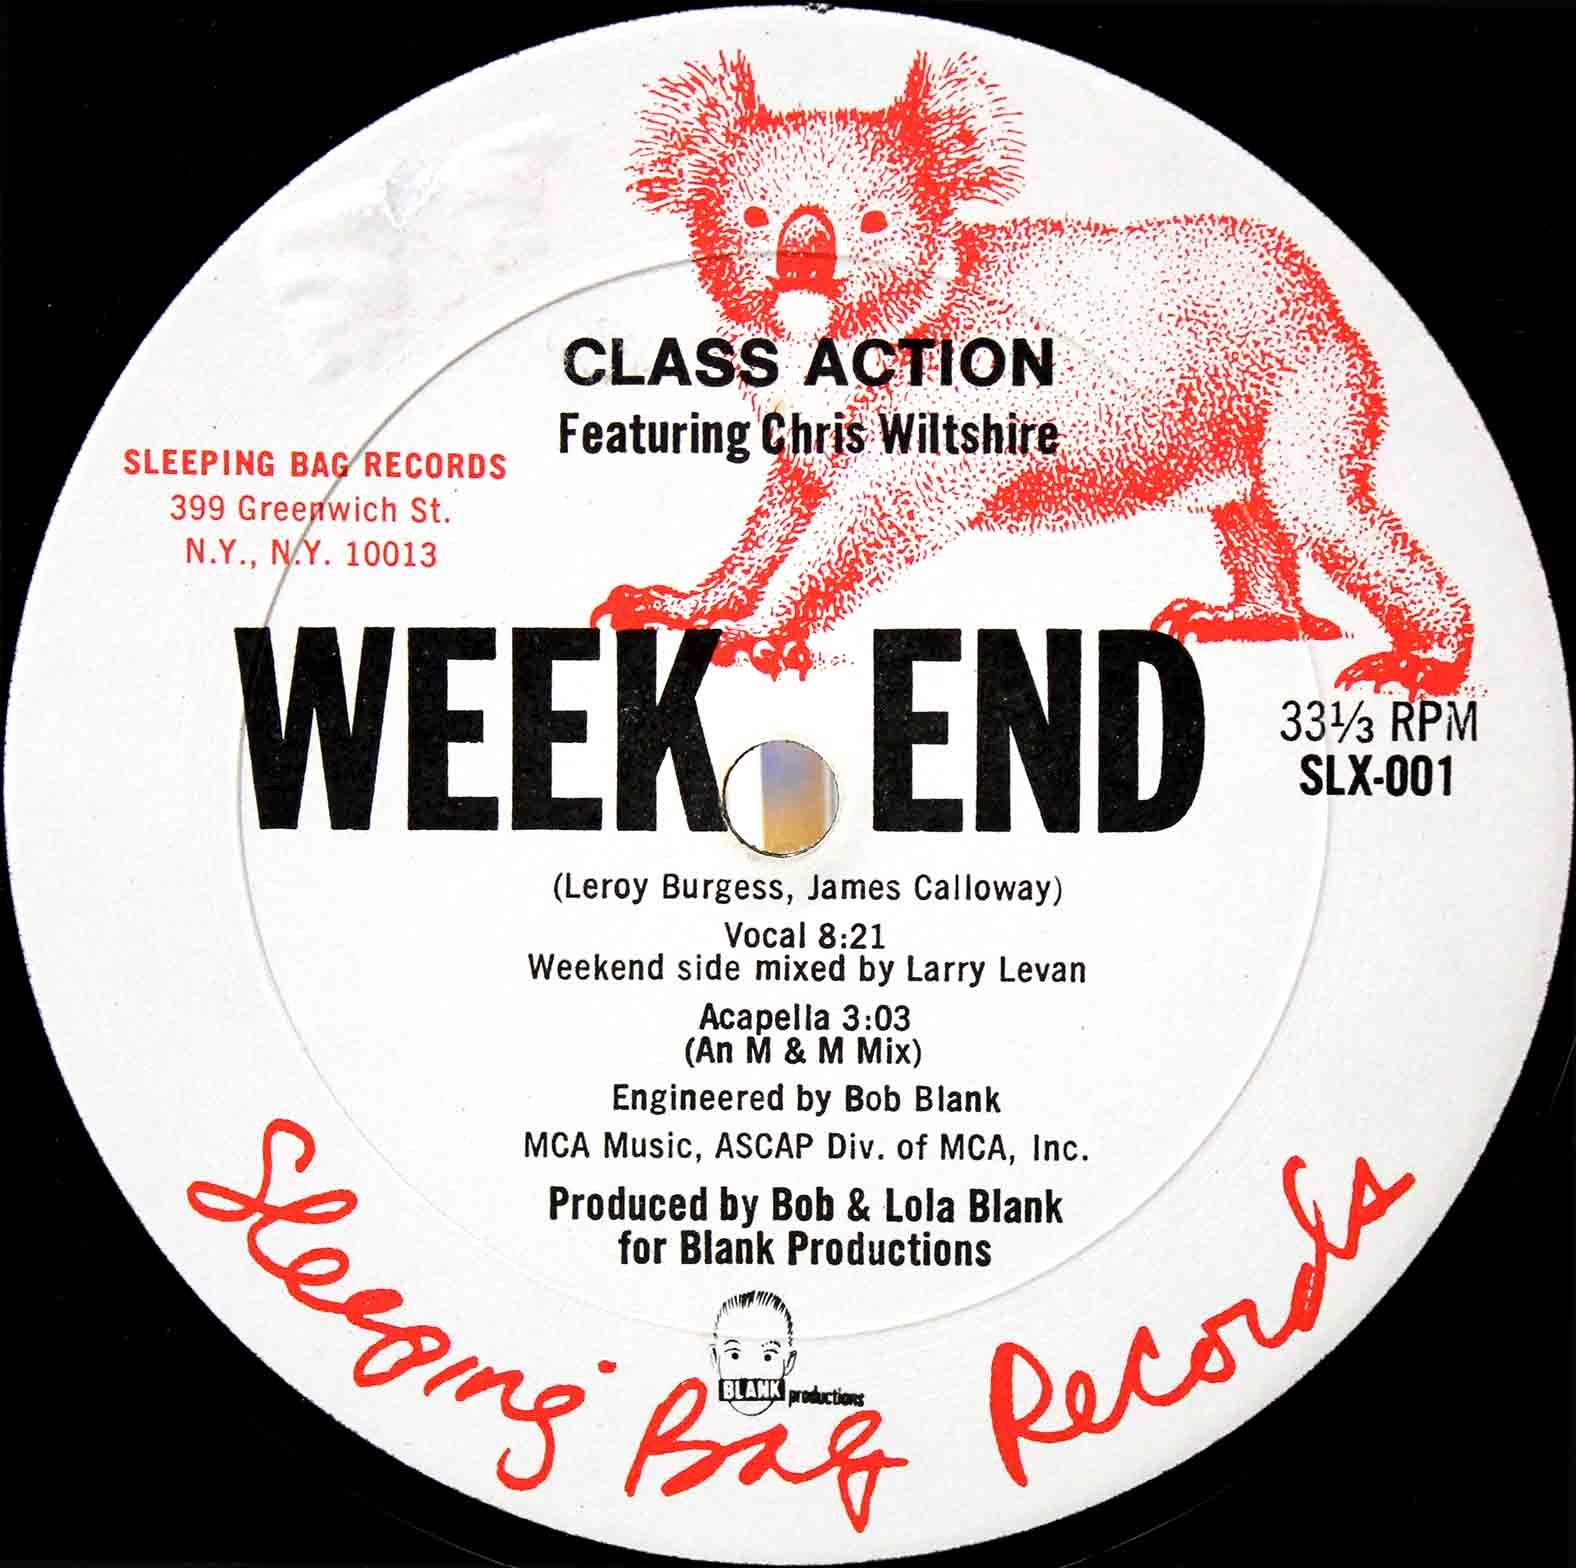 Class Action - Weekend 03